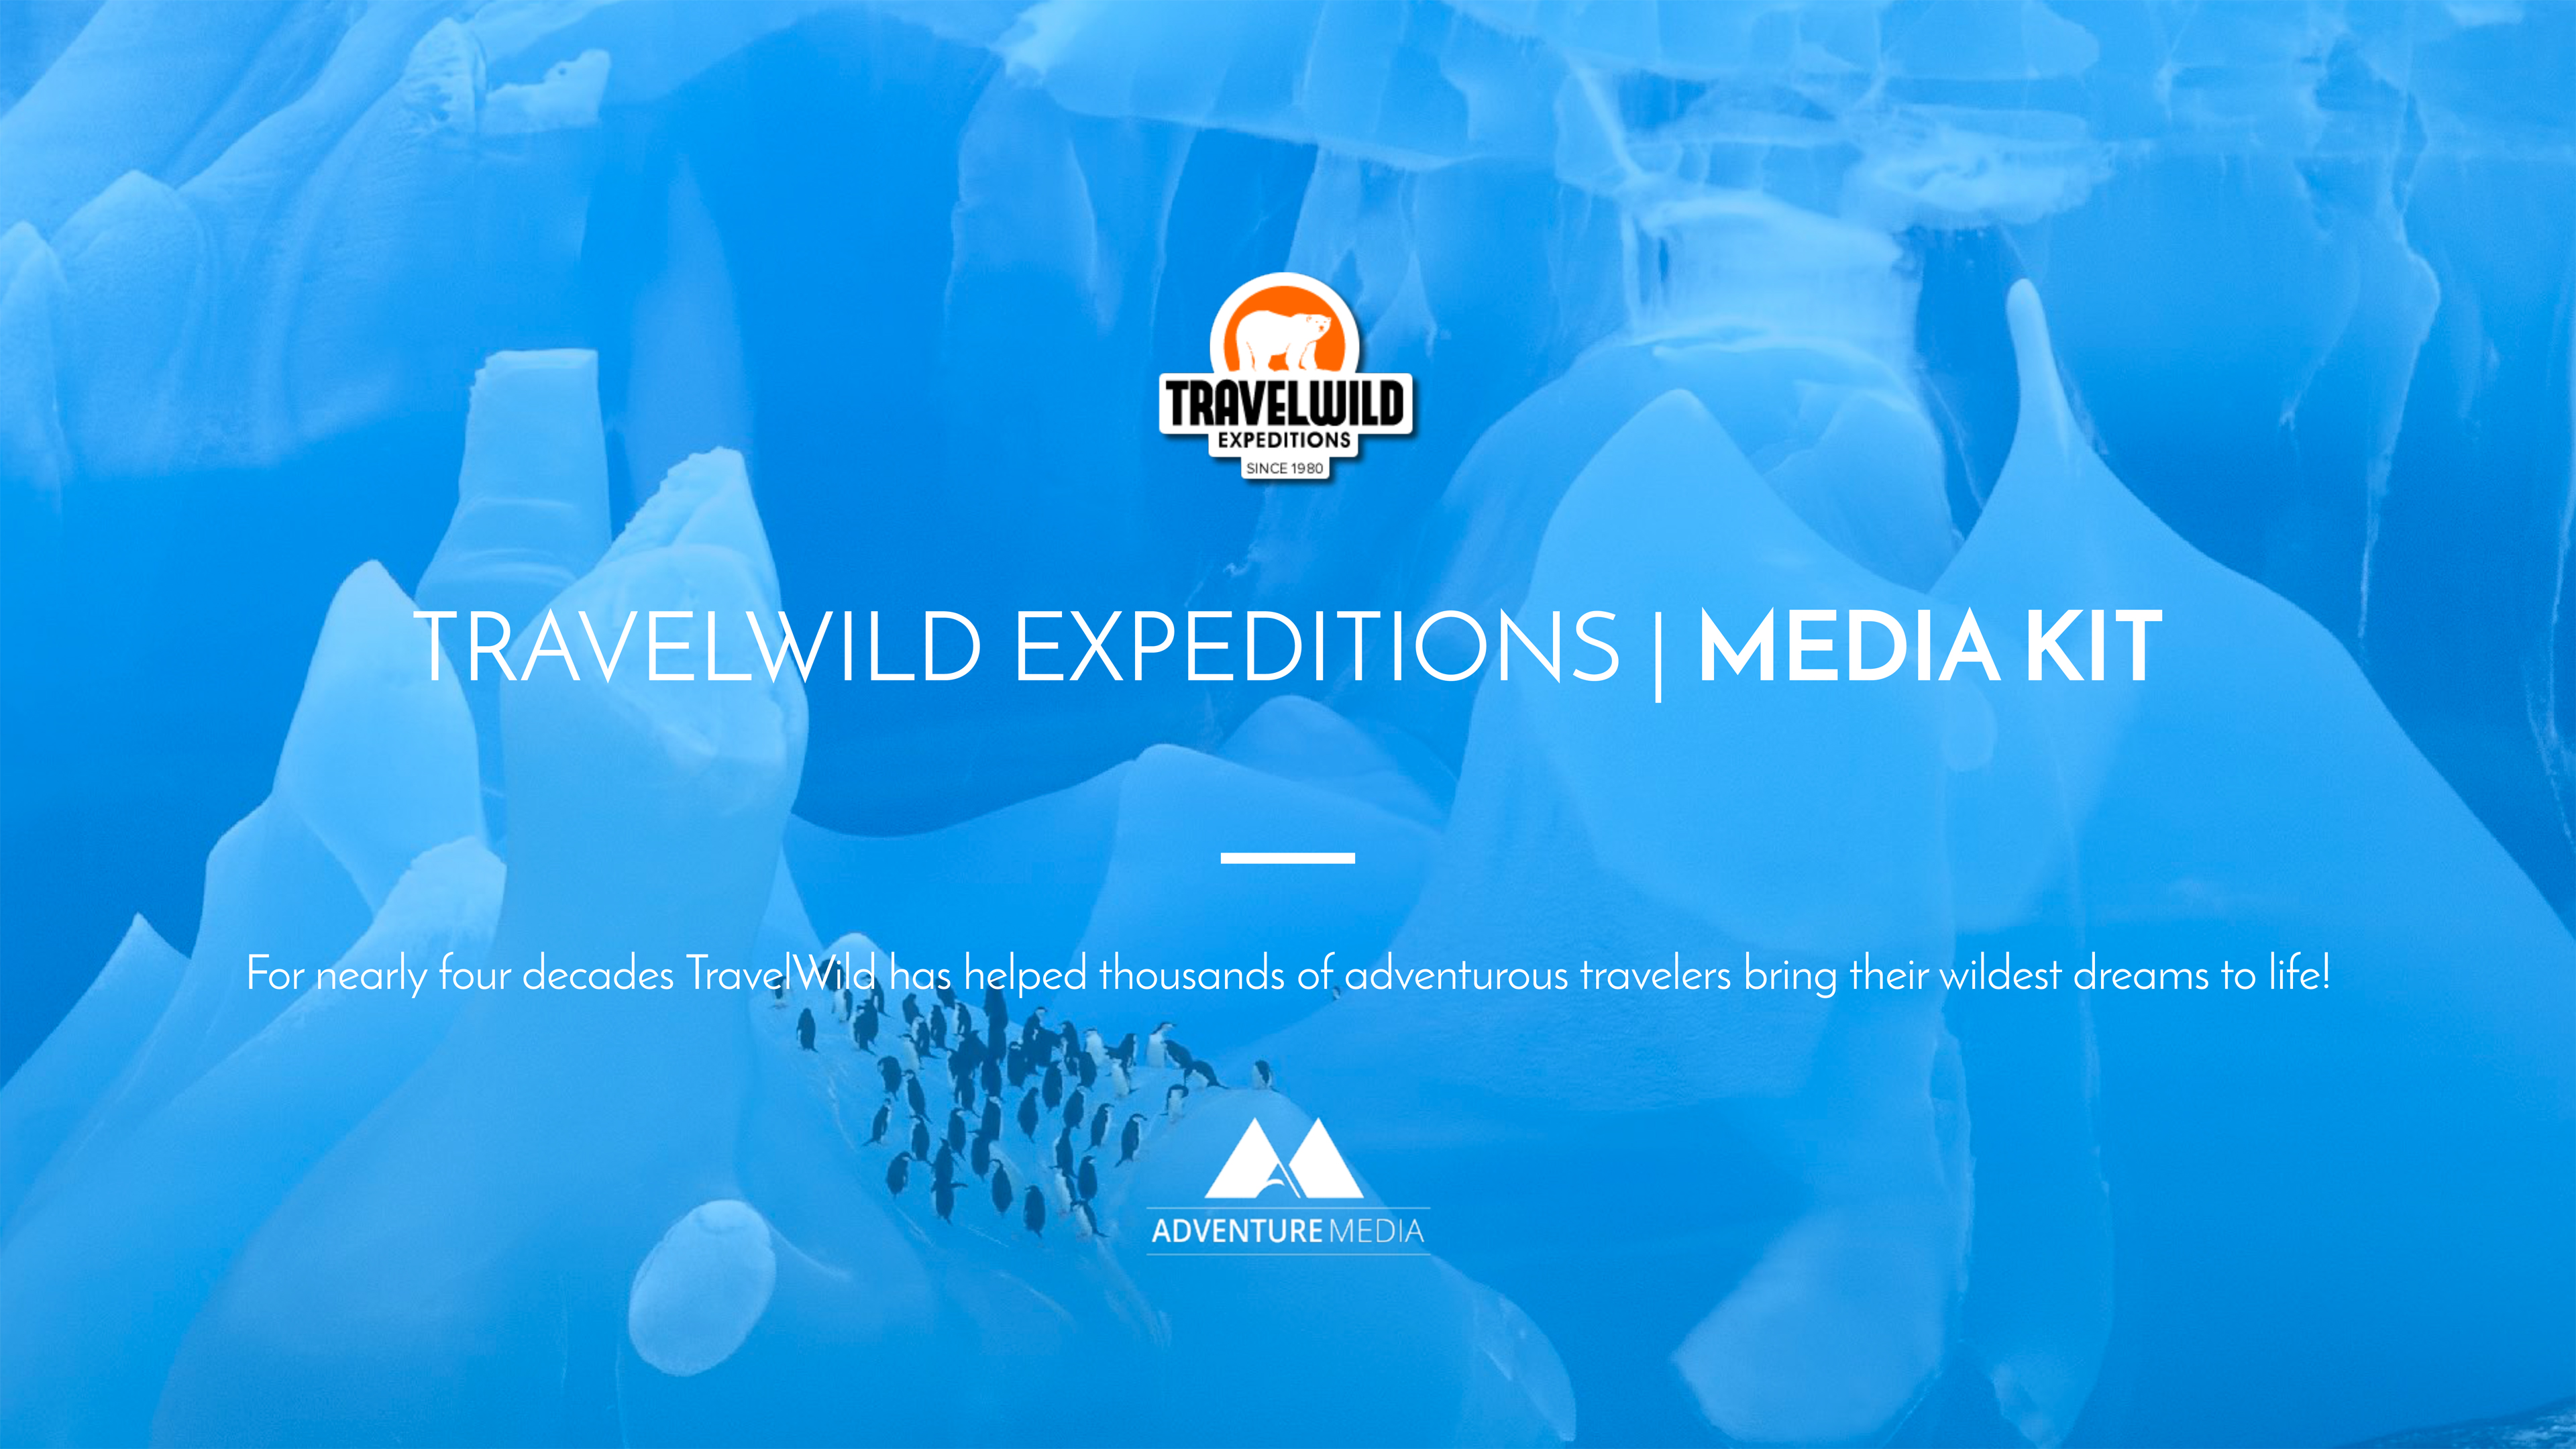 TravelWild Expeditions Media Kit